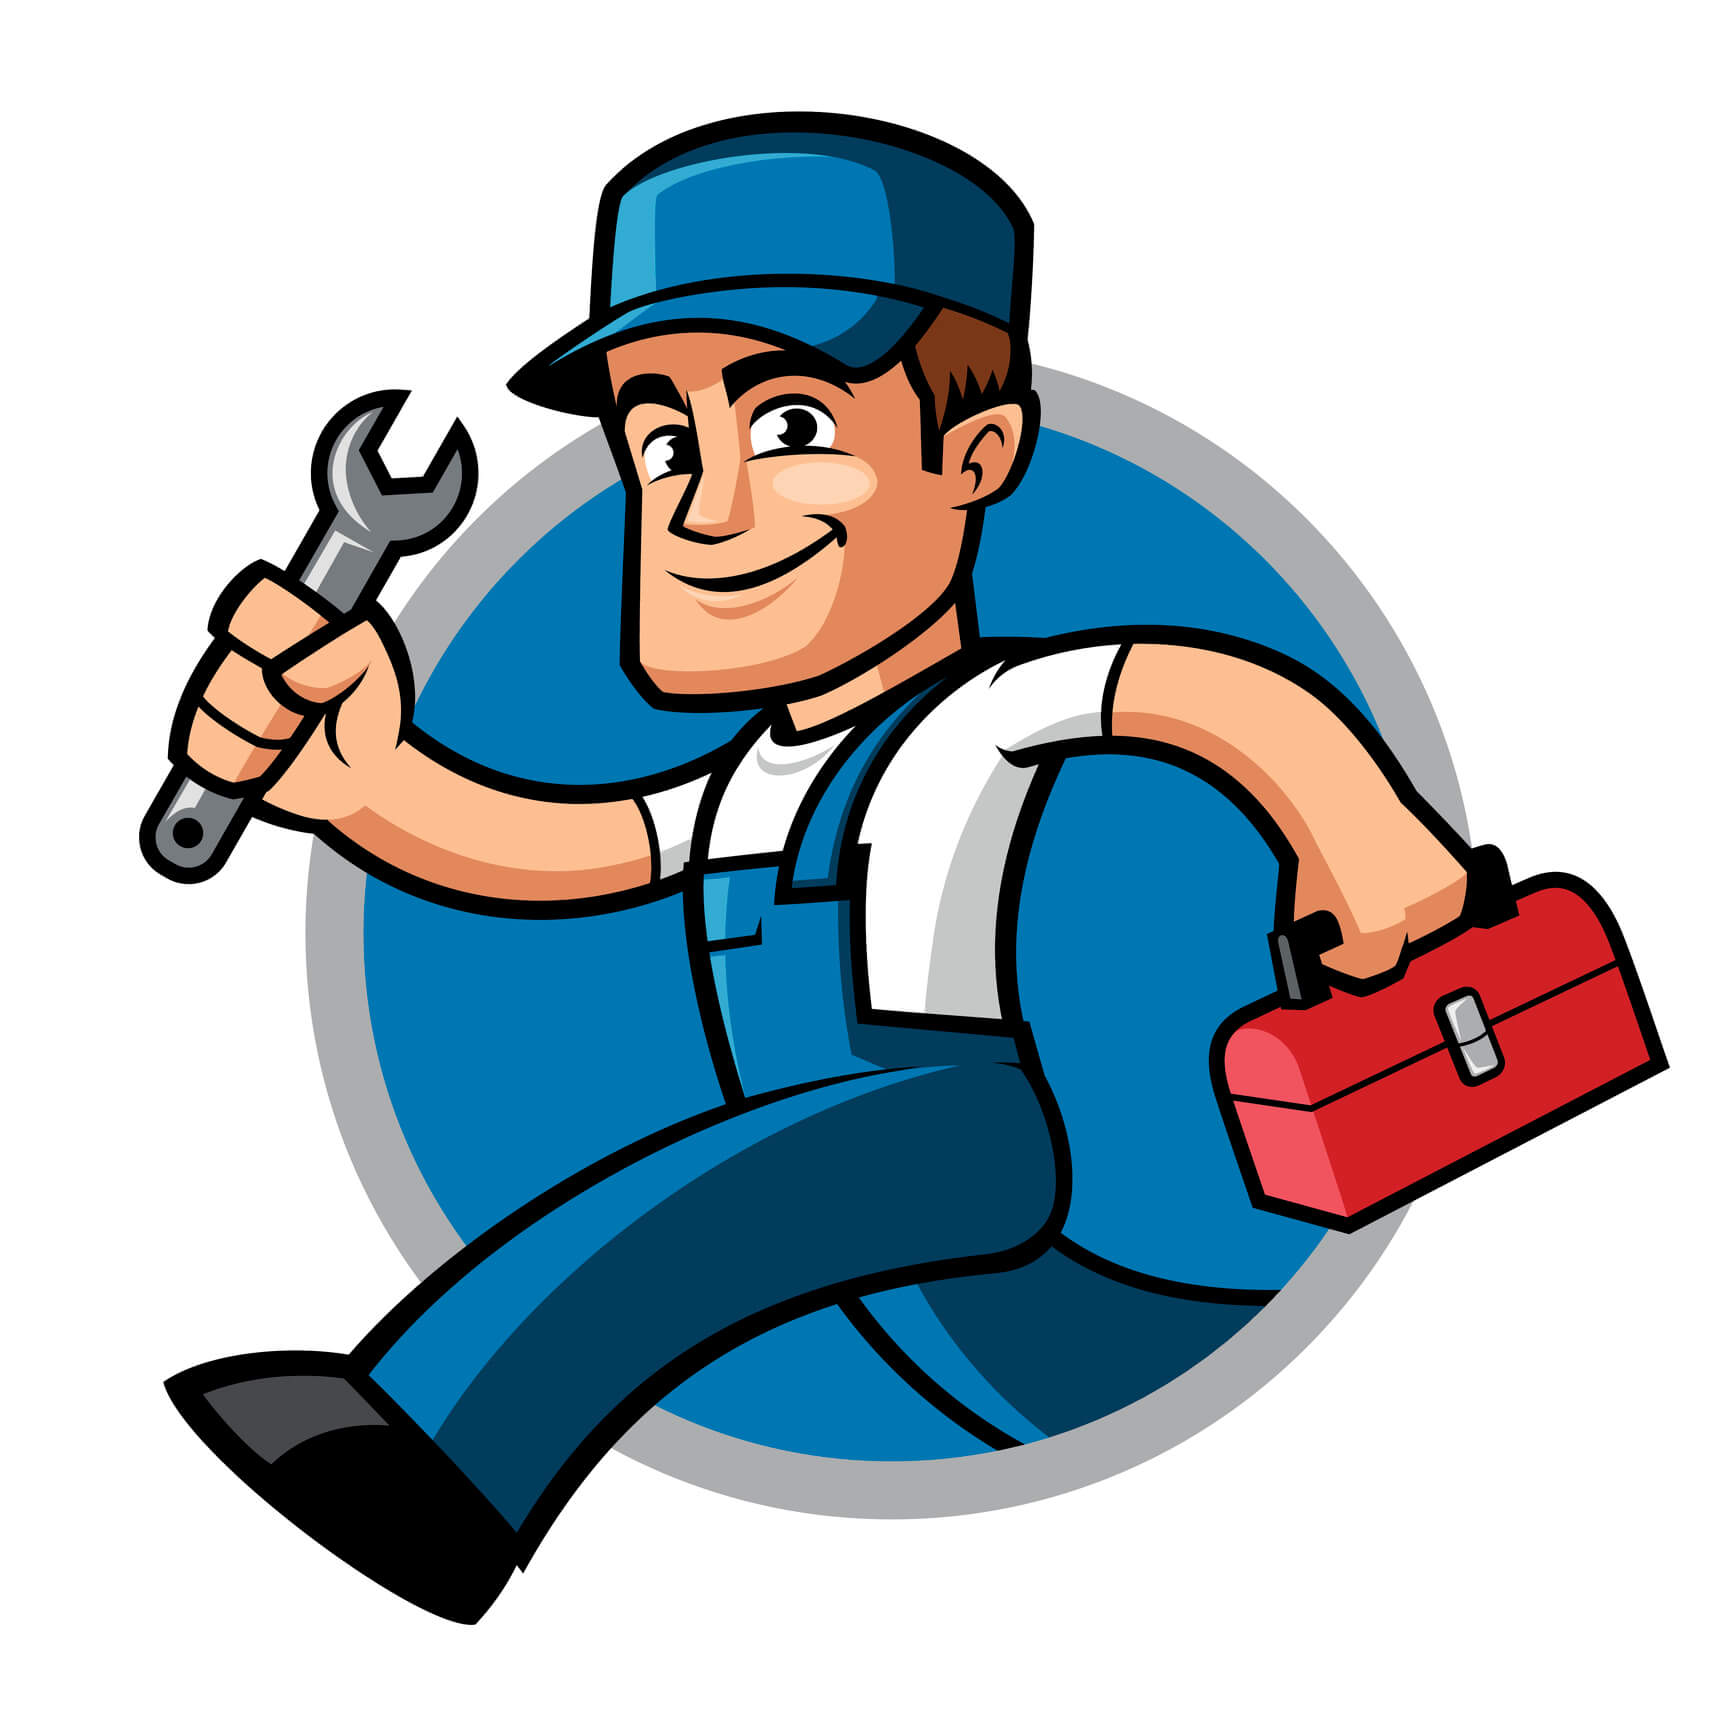 C&S Remodeling & Handyman Service - General Contracting